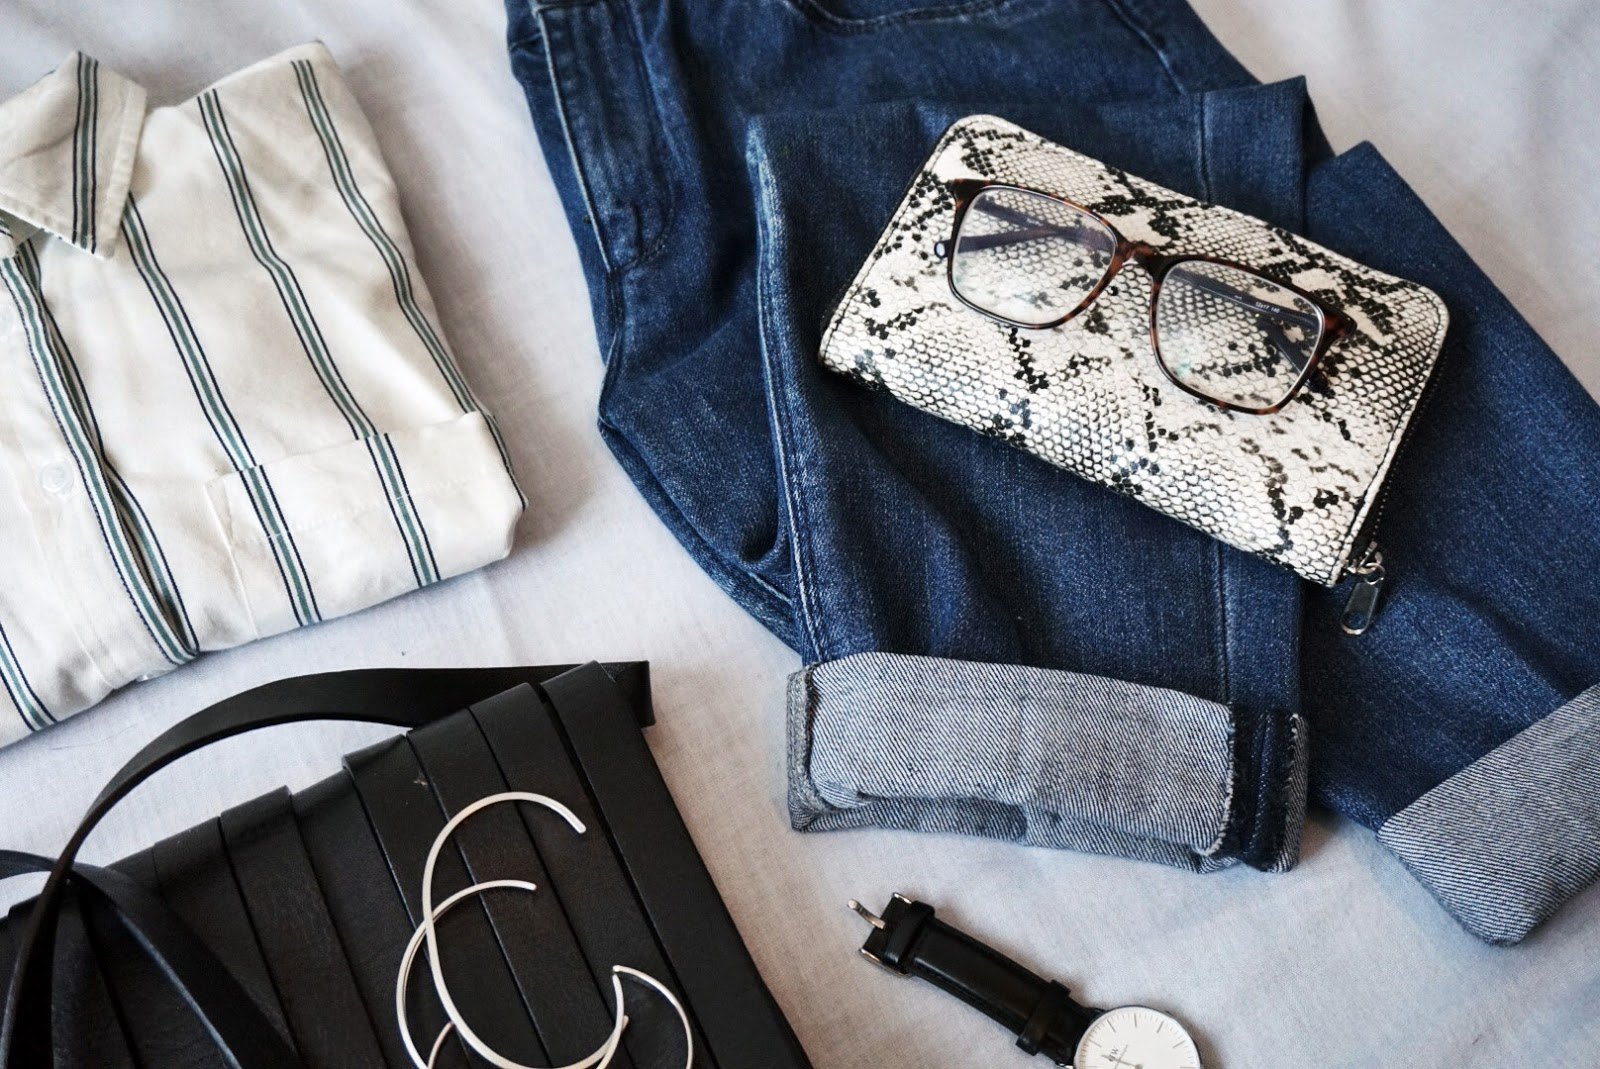 Striped shirt flat lay outfit